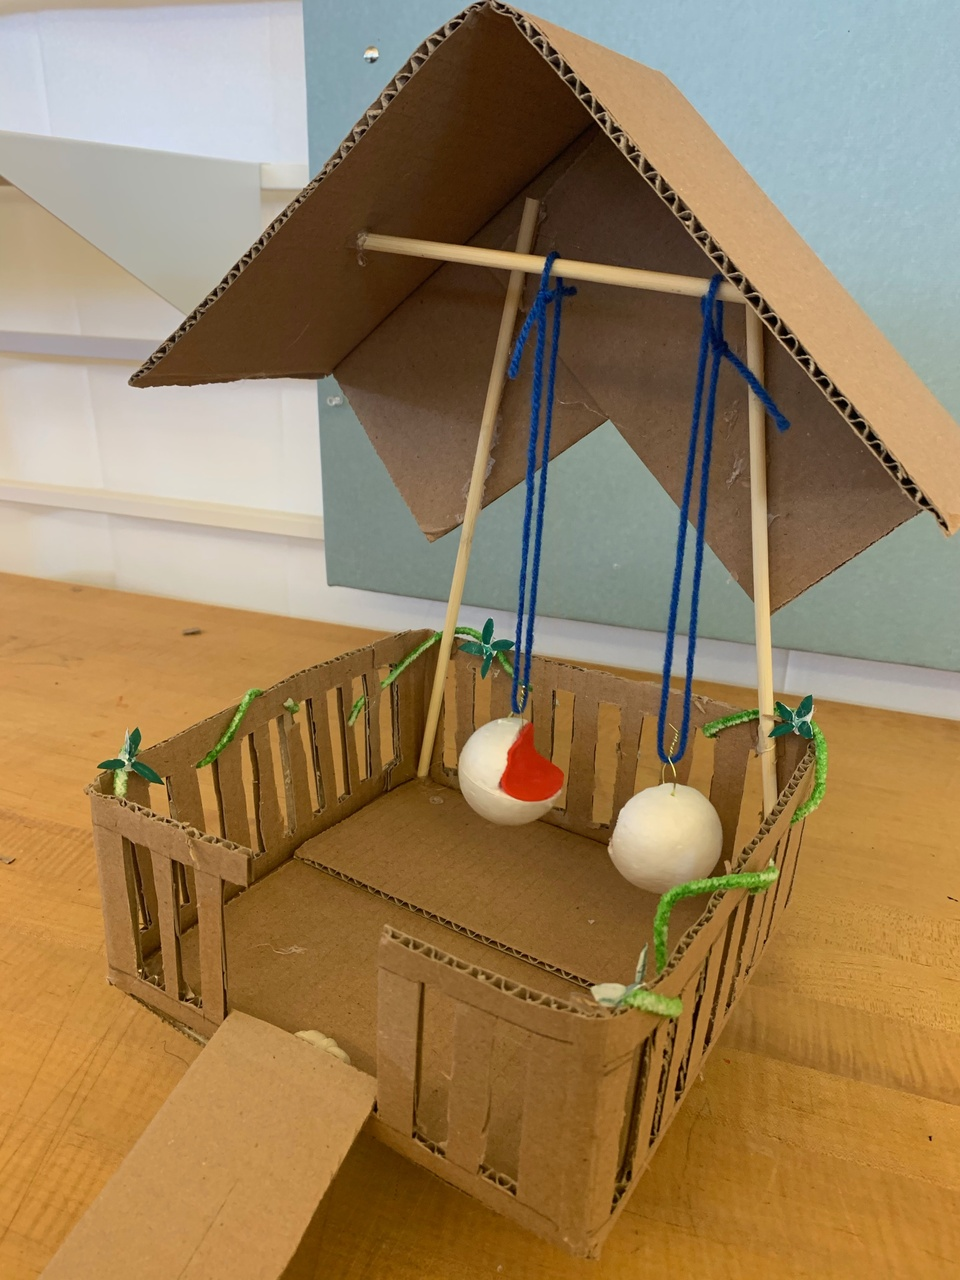 A model made out of cardboard, yarn, and other materials.